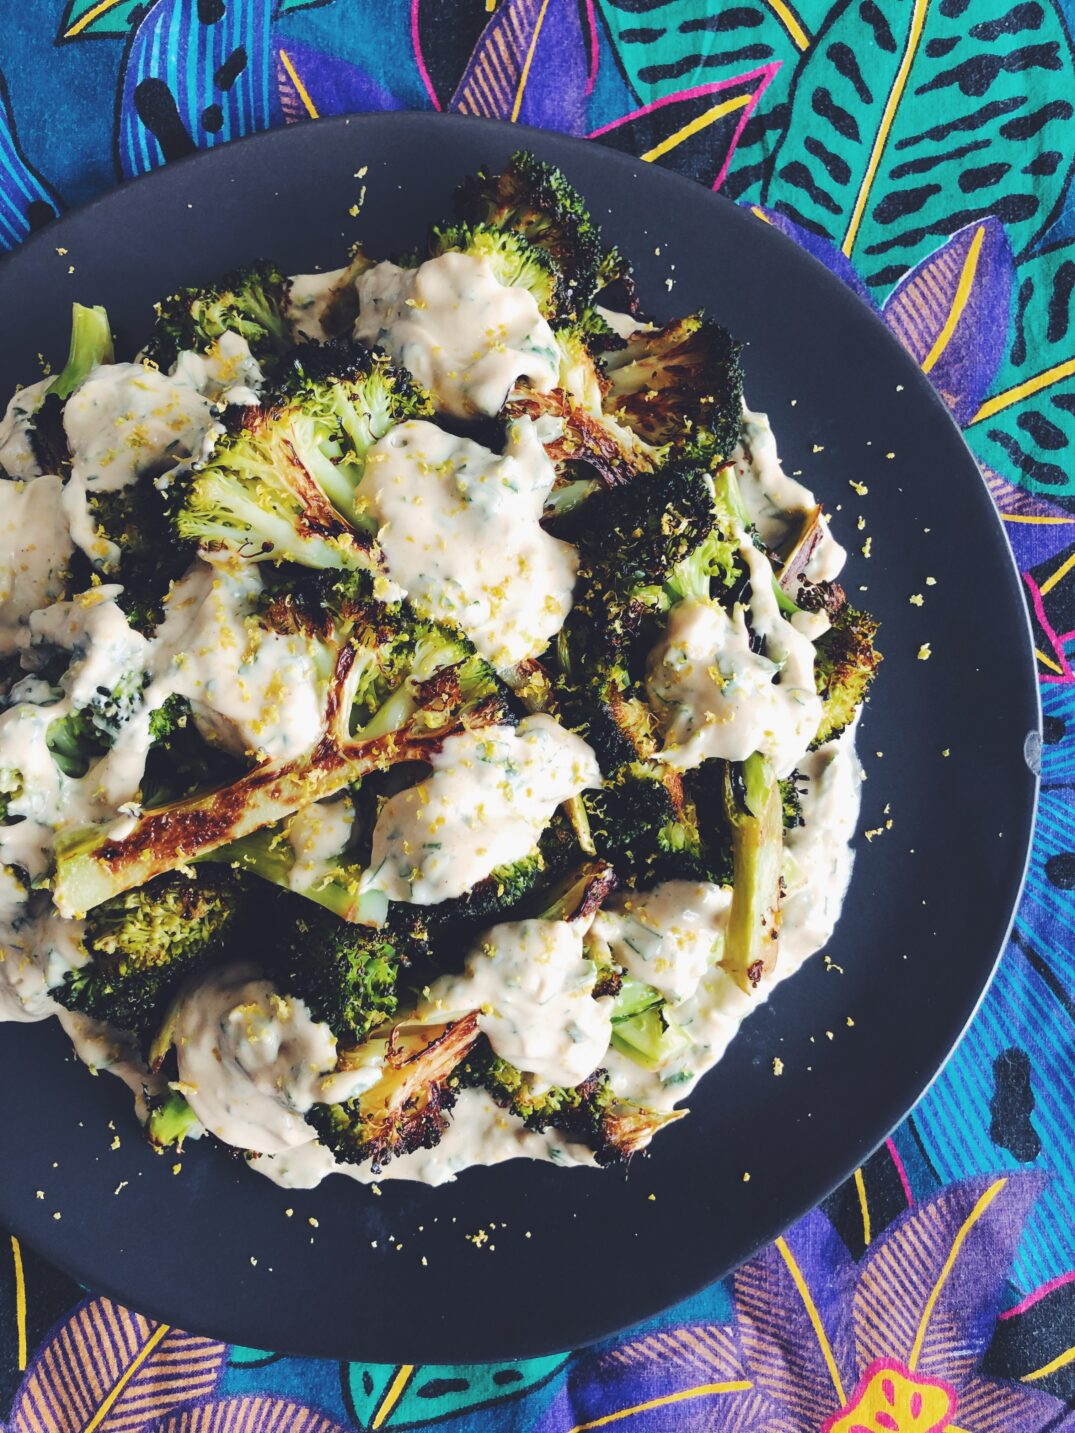 Roasted Broccoli with Lemon Herb + Garlic Tahini Sauce